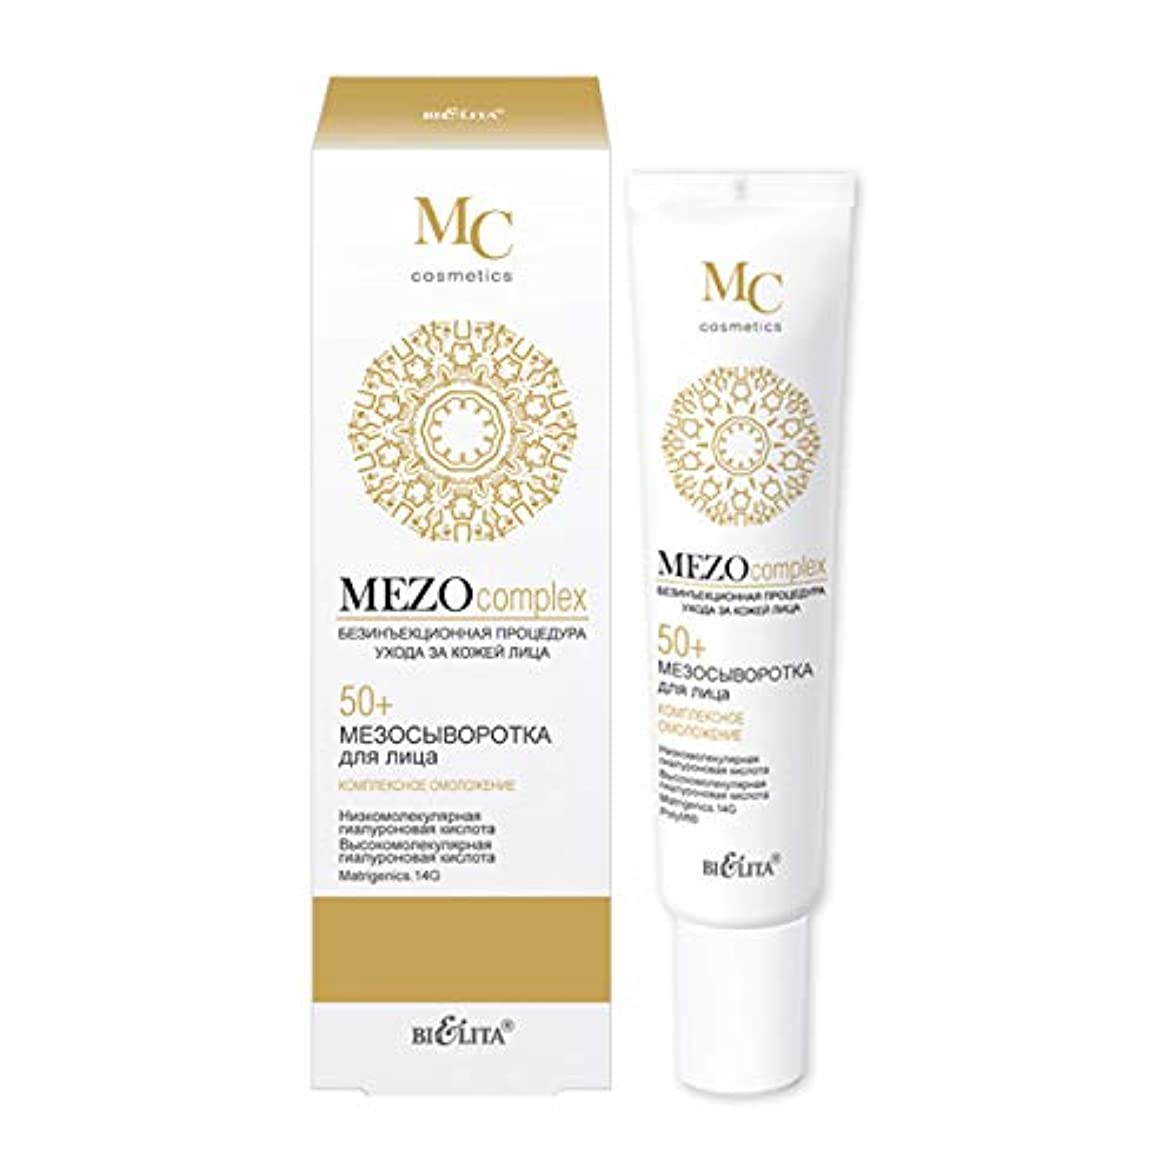 慰め露出度の高い外出Mezo complex | Mezo Serum Complex 50+ | Non-injection facial skin care procedure | Hyaluronic acid | Matrigenics.14G | Polylift | Active formula | 20 ml